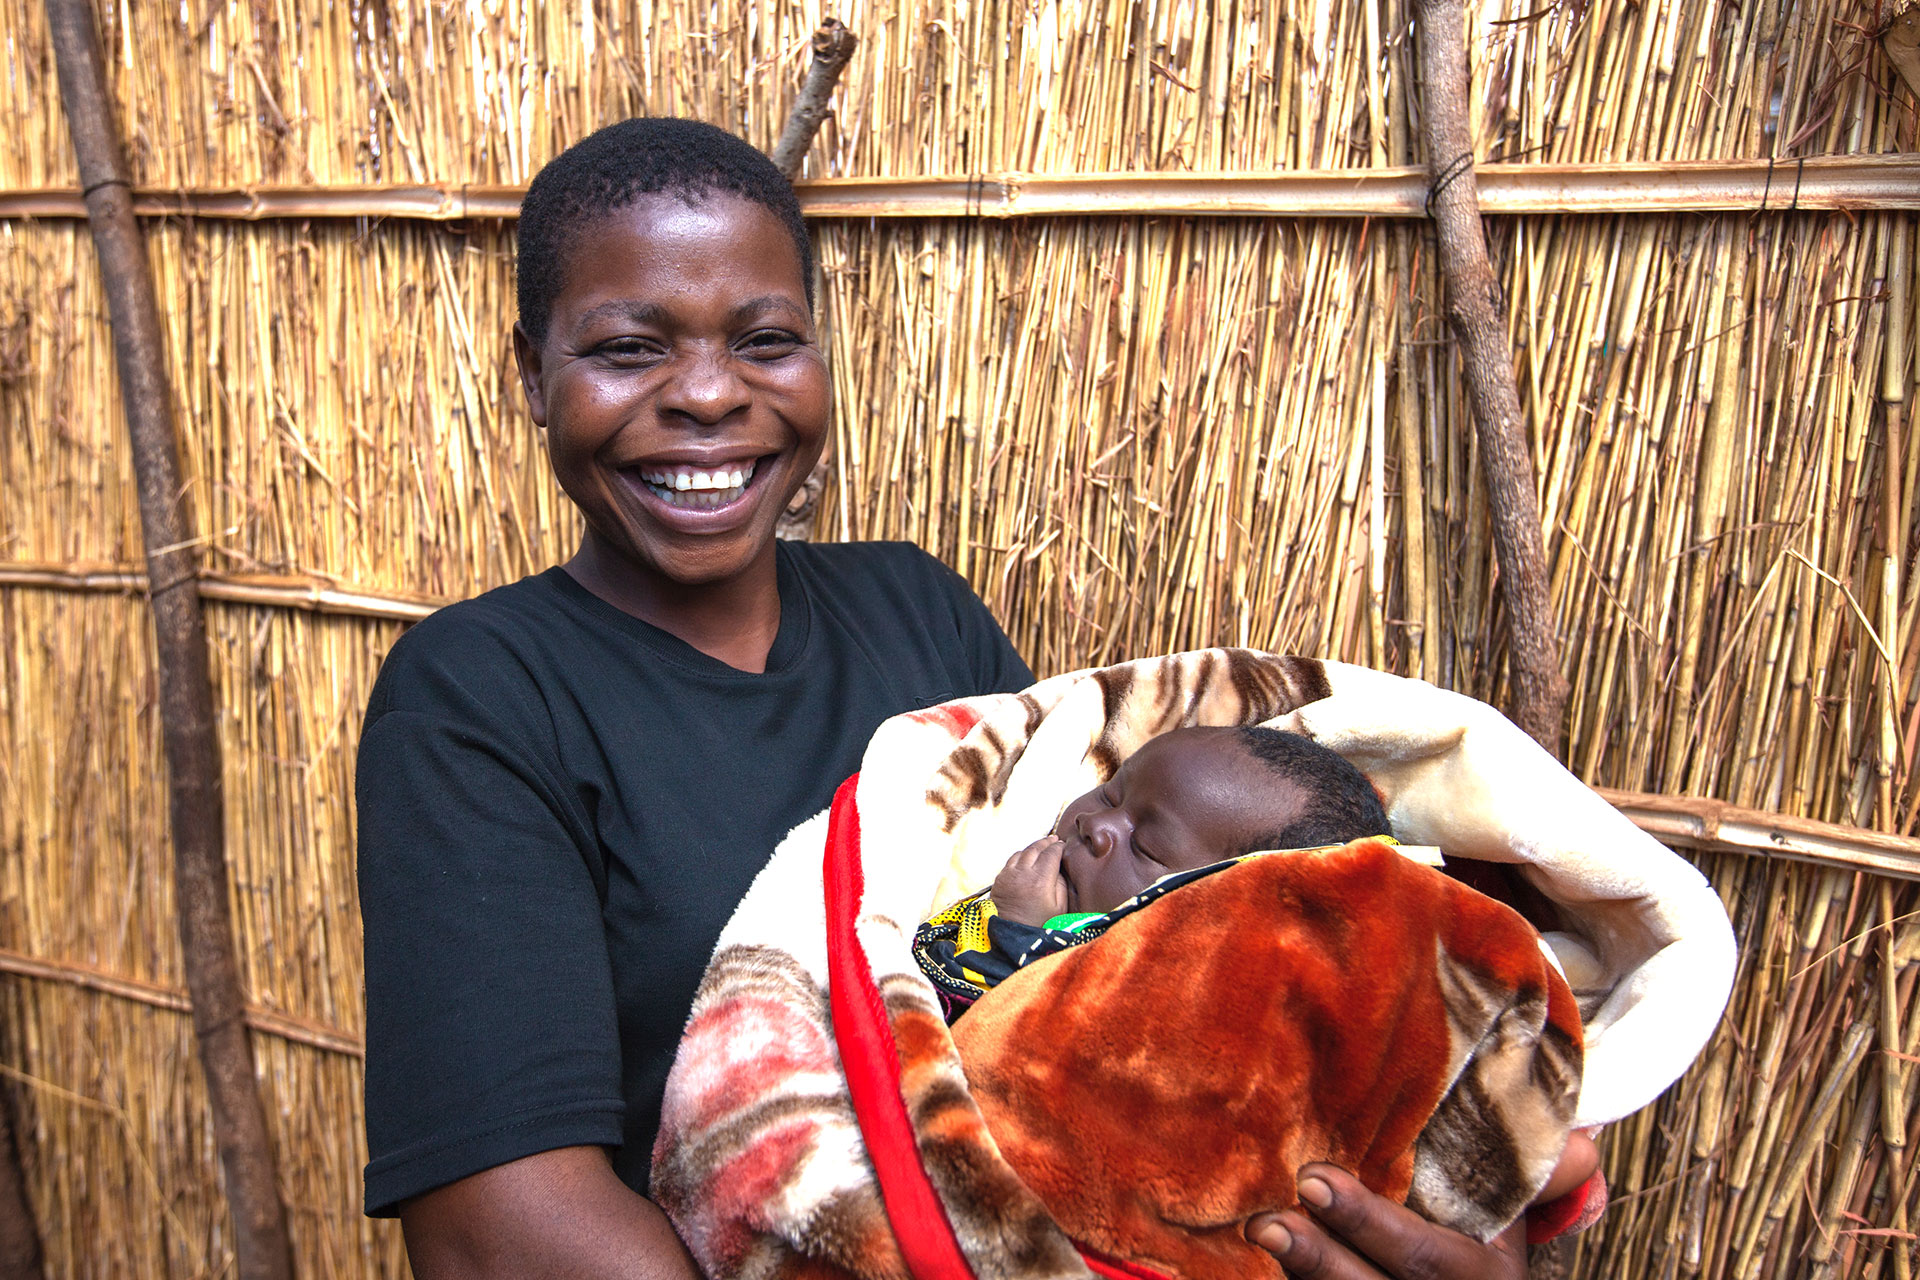 Volunteer community health worker Sophie Makoza's smile says it all as she holds baby Gloria